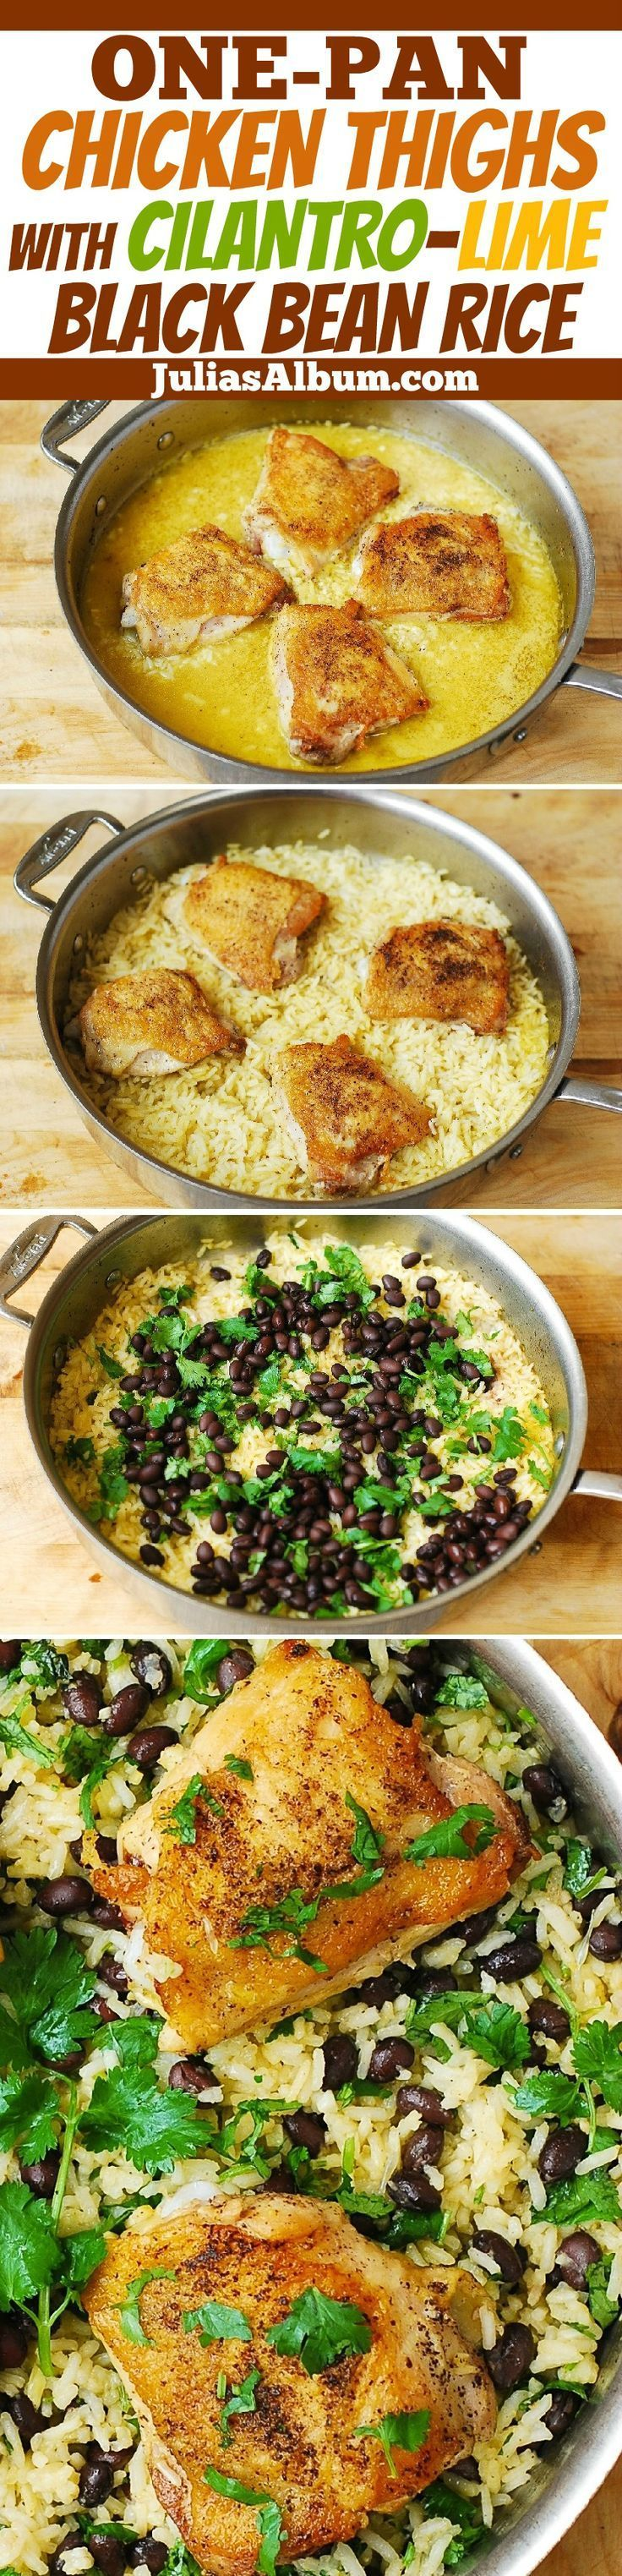 One-Pot Chicken Thighs with Cilantro-Lime Black Bean Rice - delicious, healthy, gluten free dinner! Made on stove-top, in one pot, no need to turn on the oven! (Gluten Free Recipes Rice)